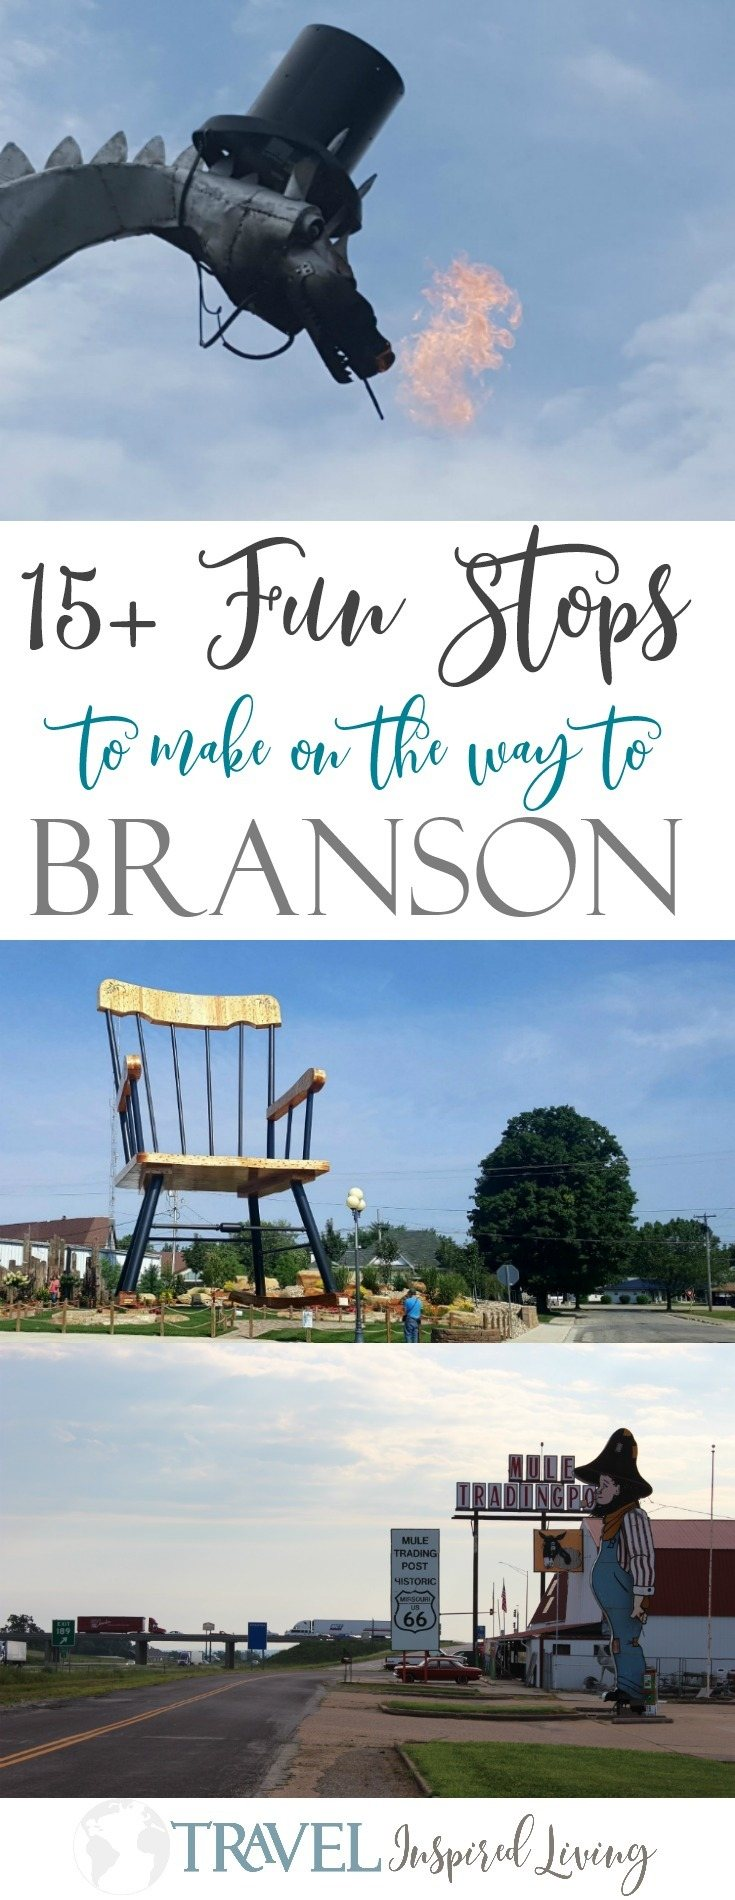 15+ fun stops to make on a road trip to Branson. From Route 66 to the world's largest rocking chair you'll find plenty to see and do.